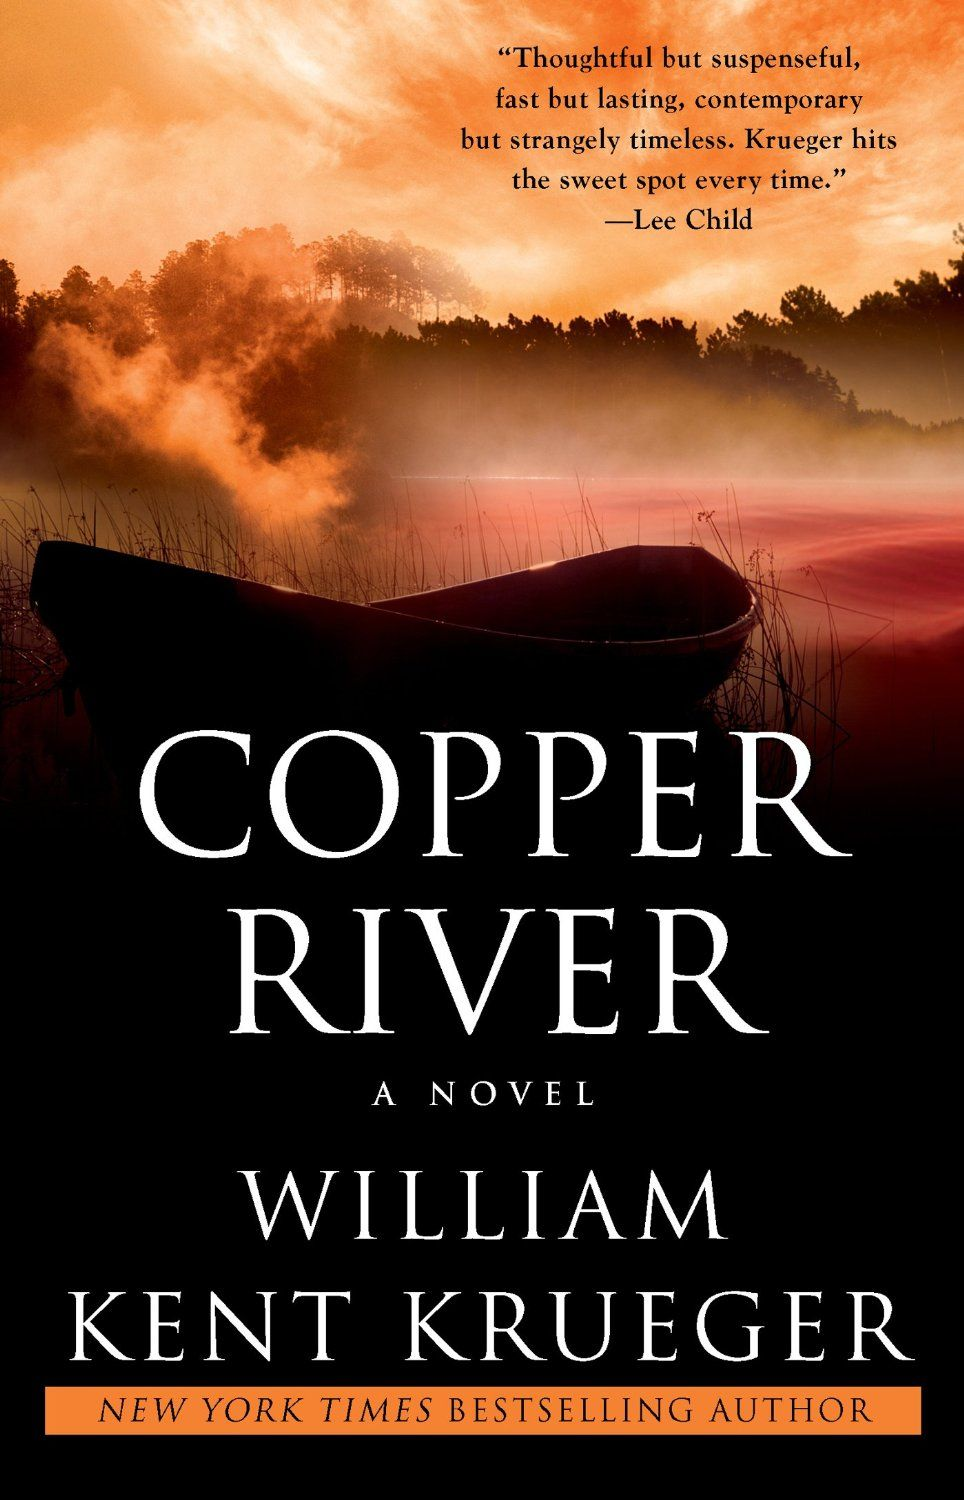 Copper River the 6th book in the Cork O'Connor series by